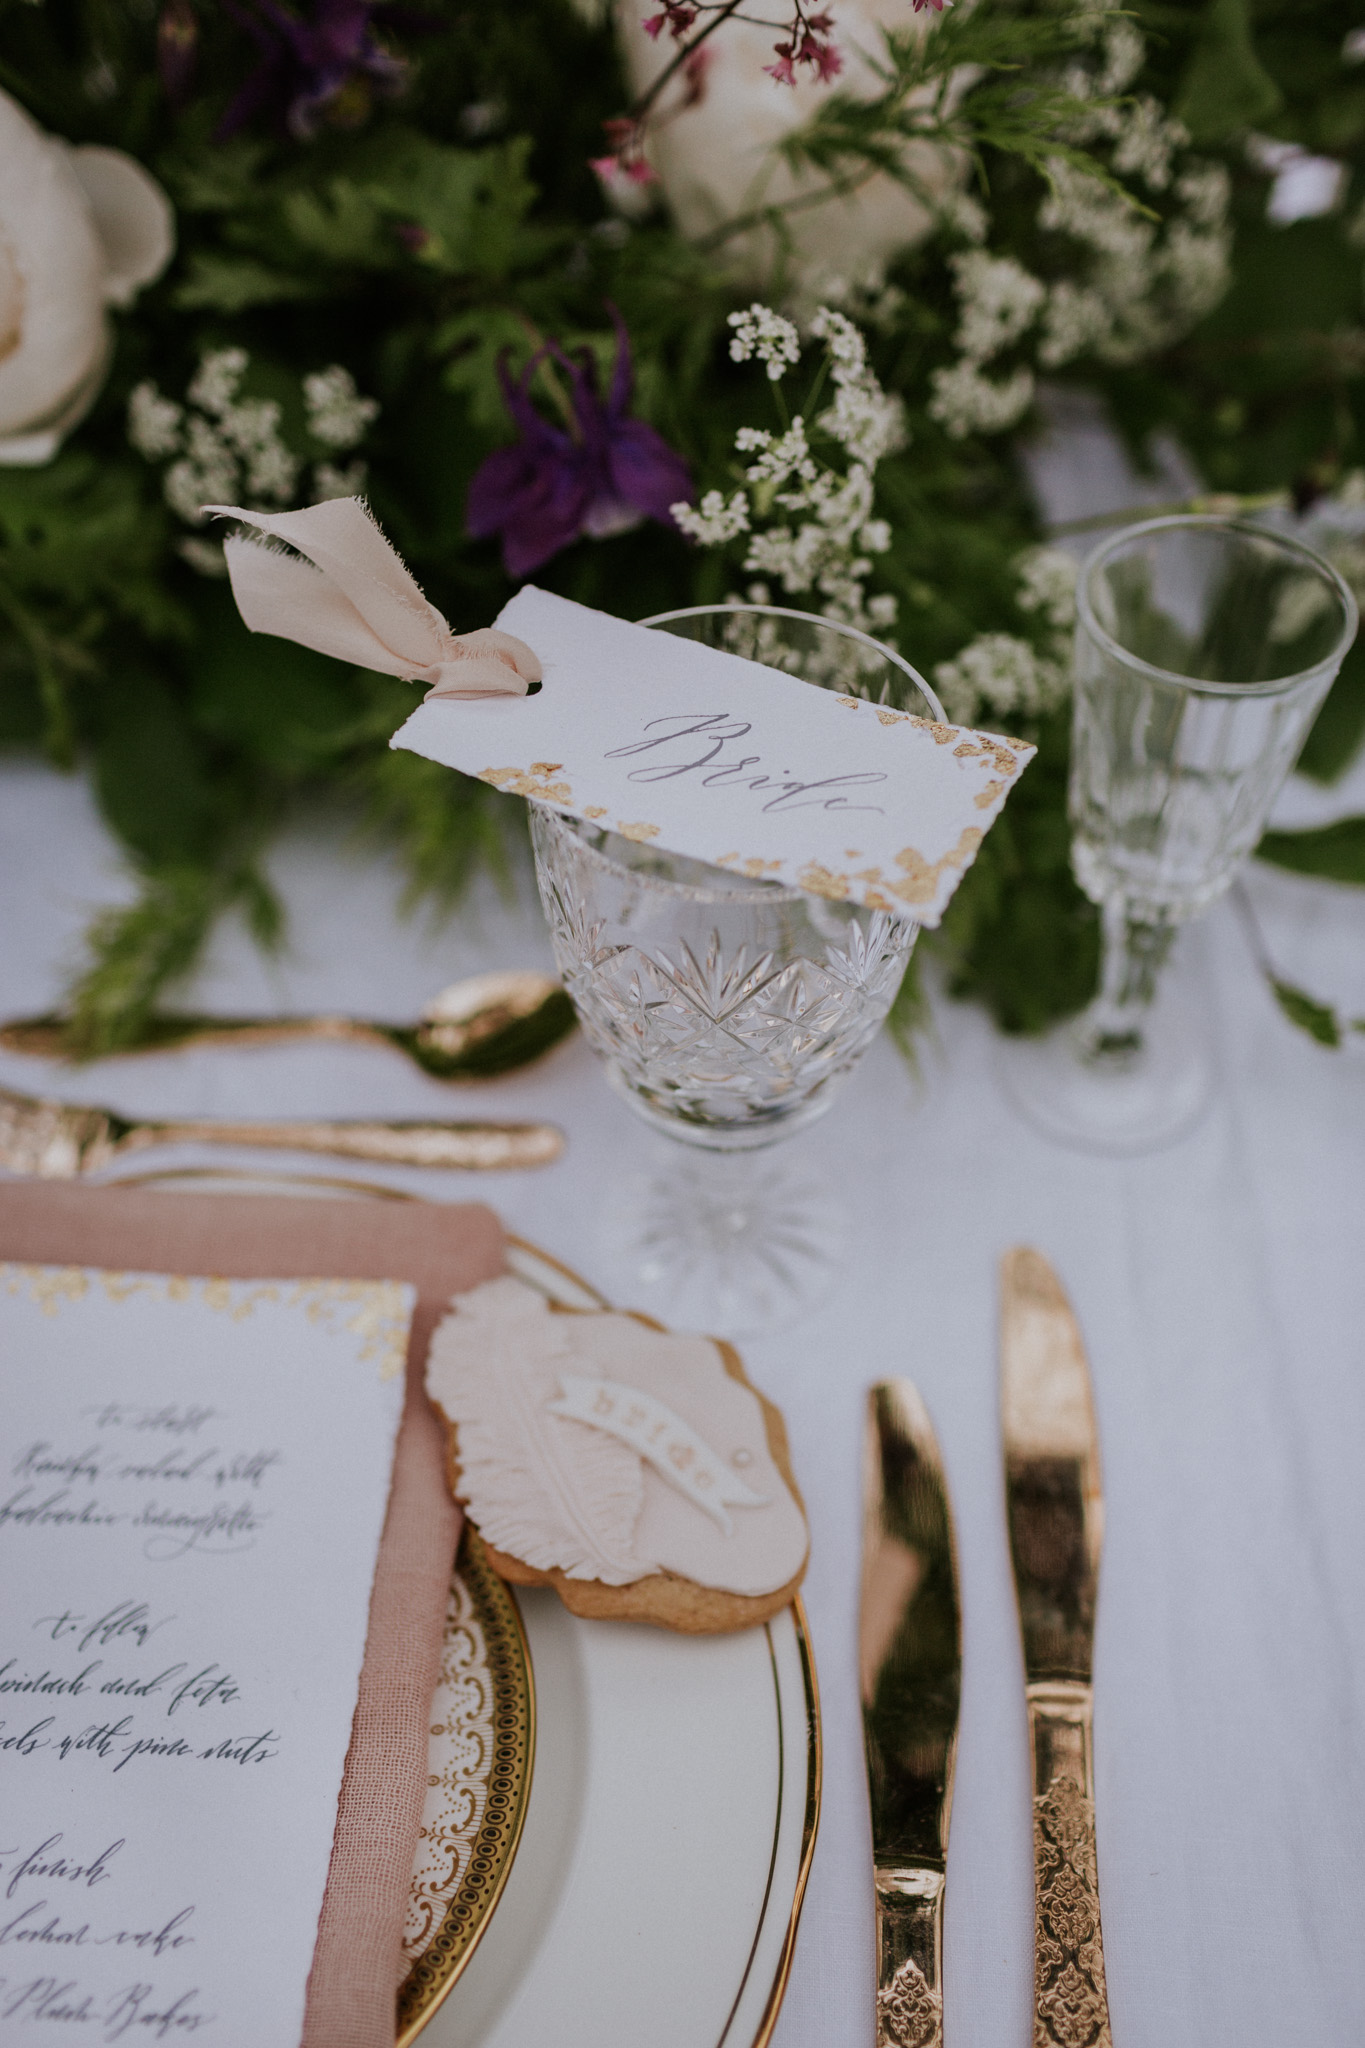 Luxury Place Cards Place setting Handmade Paper Calligraphy Place Cards Wedding Place Cards Wedding Table Setting